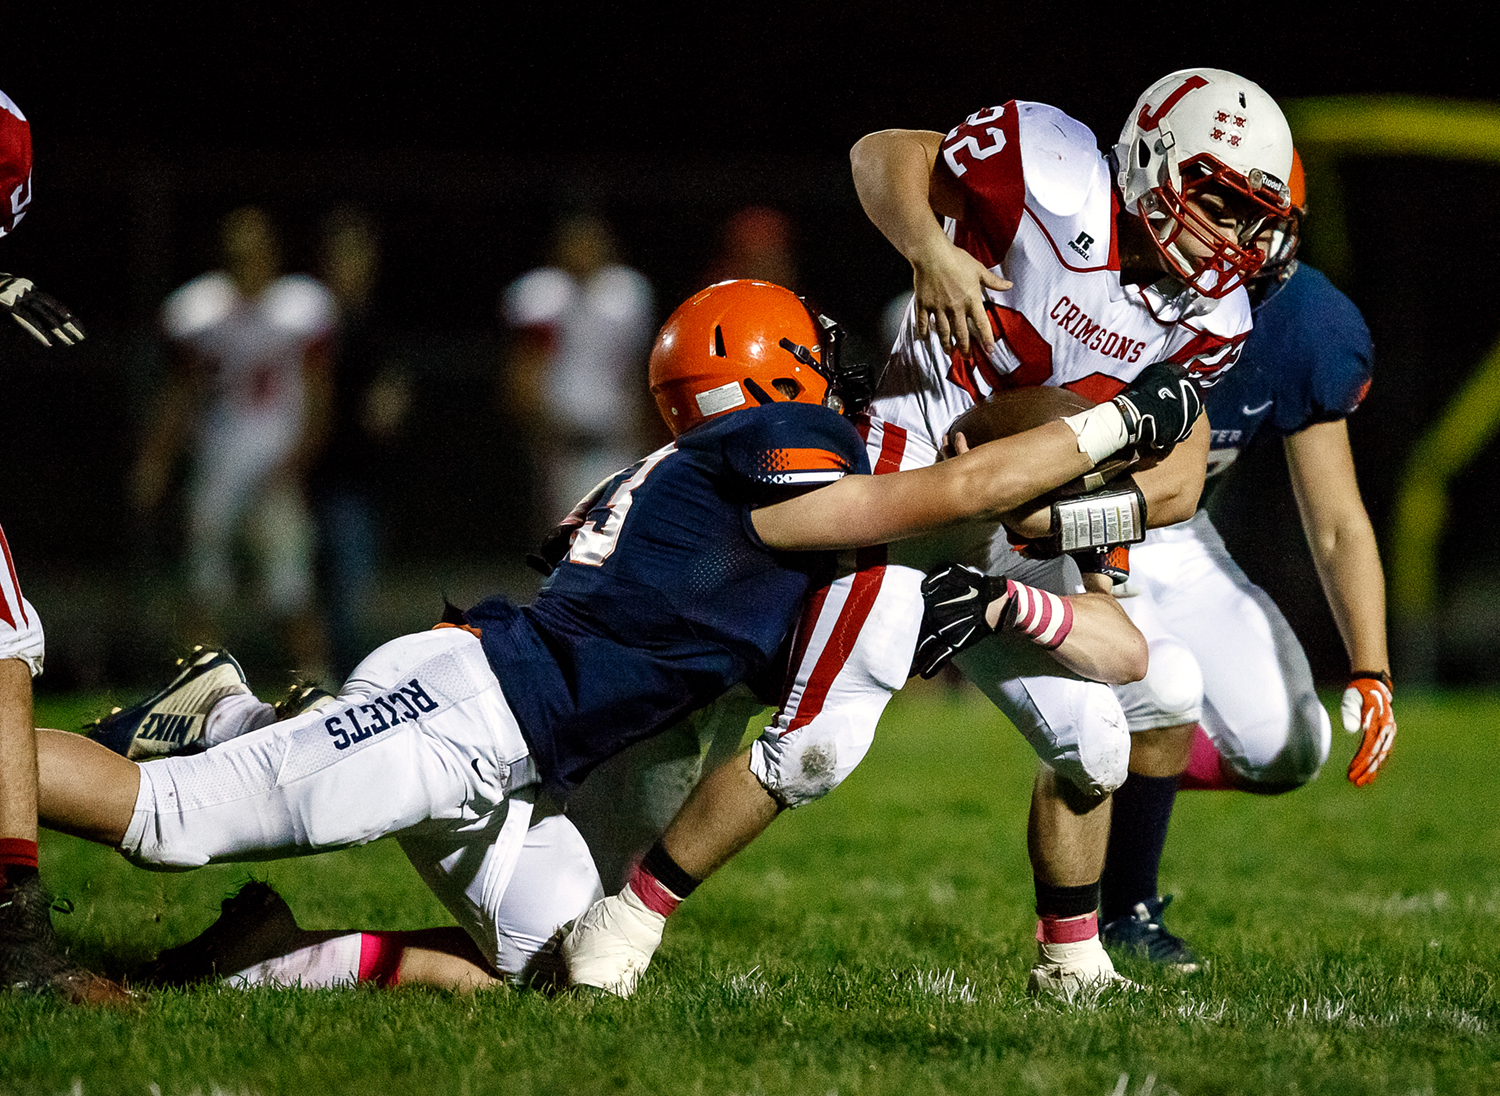 Jacksonville's Matt Rooney (22) is brought down by the Rochester defense during the first half at Rocket Booster Field, Friday, Oct. 10, 2014, in Rochester, Ill. Justin L. Fowler/The State Journal-Register